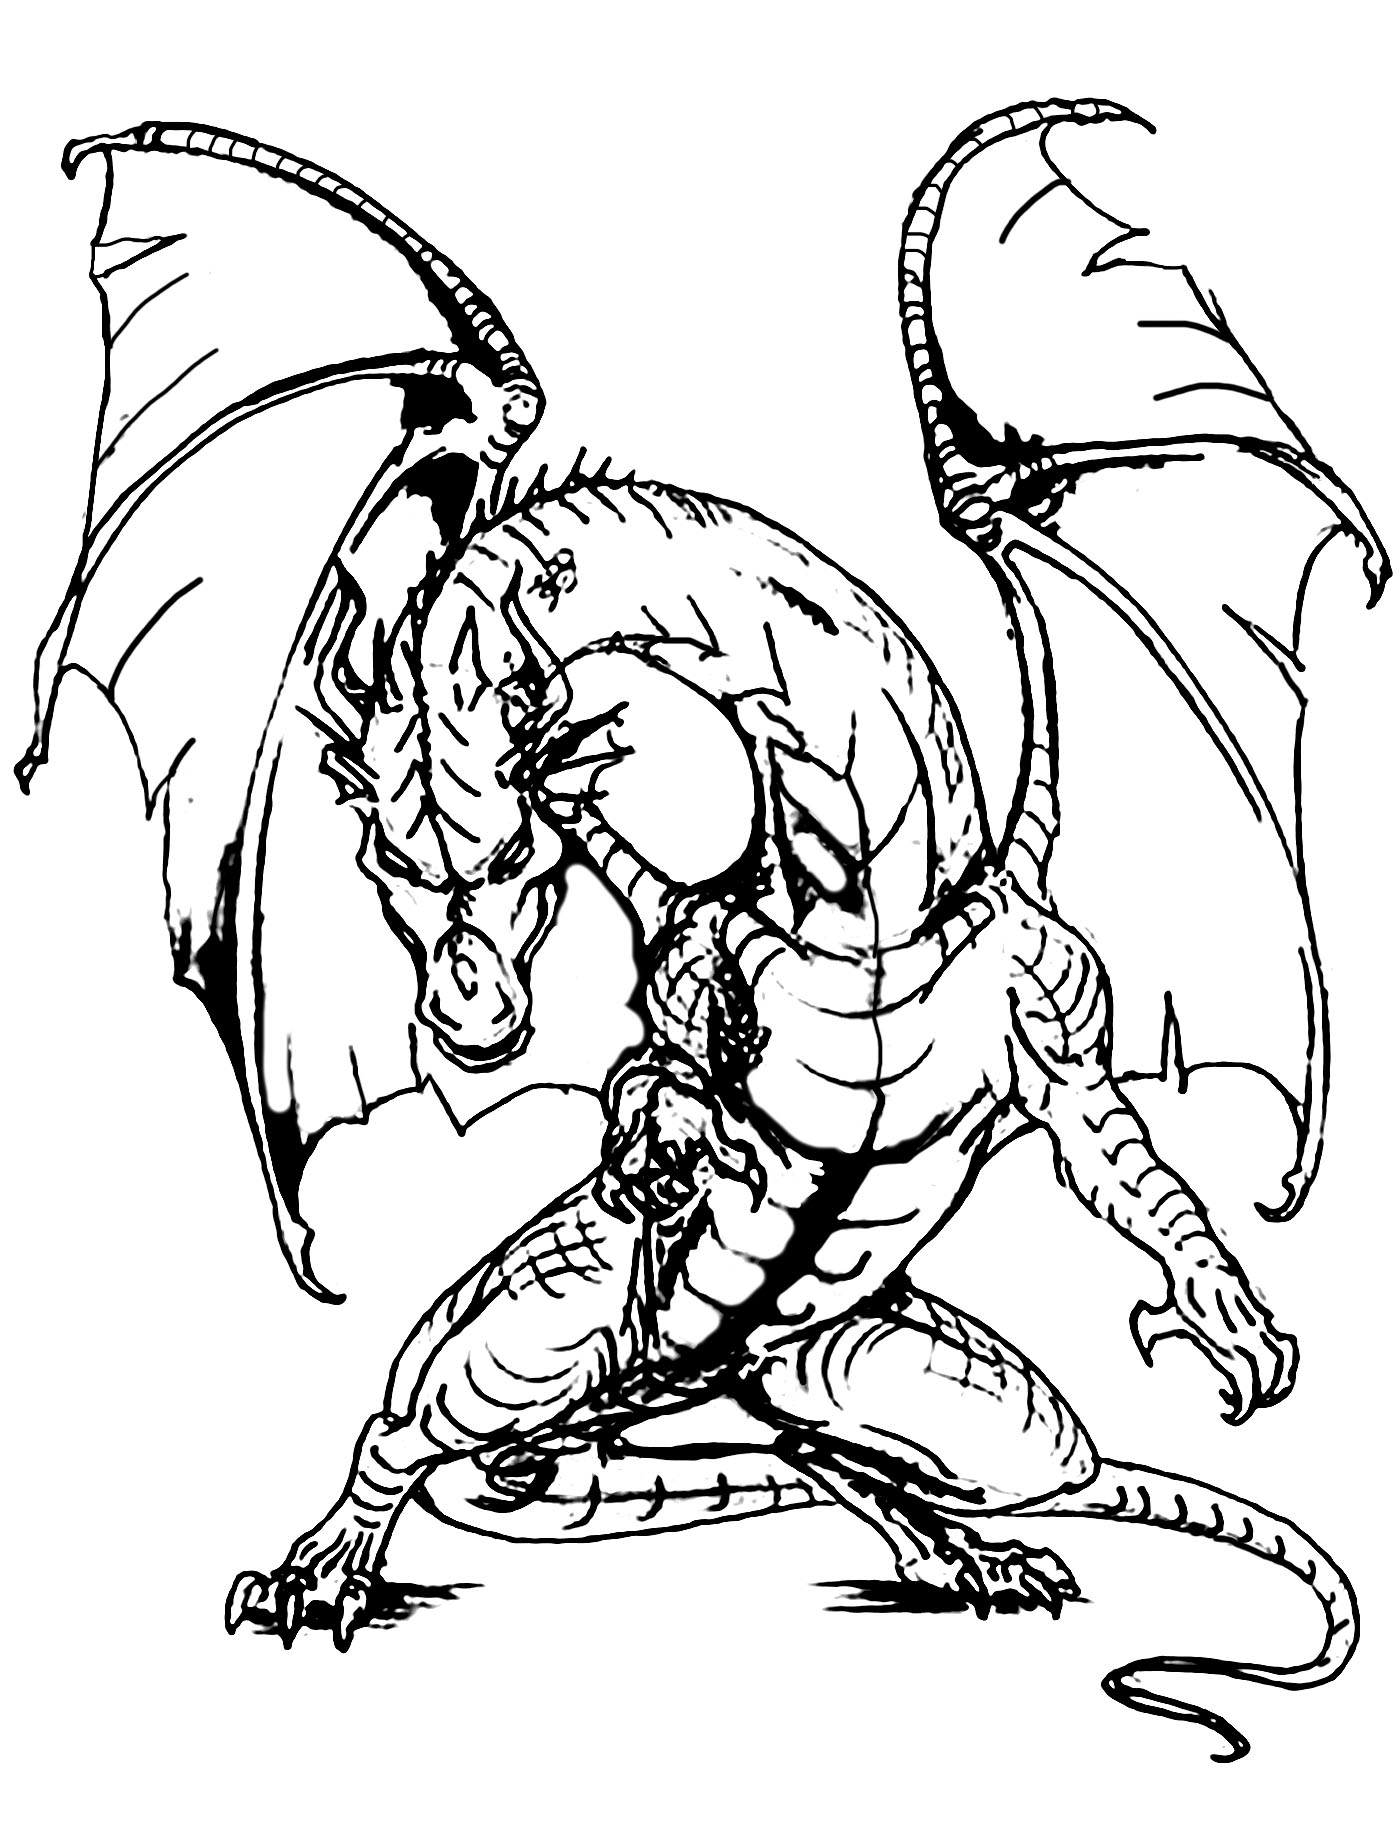 coloring page giant dragon - Dragon Coloring Pages For Adults